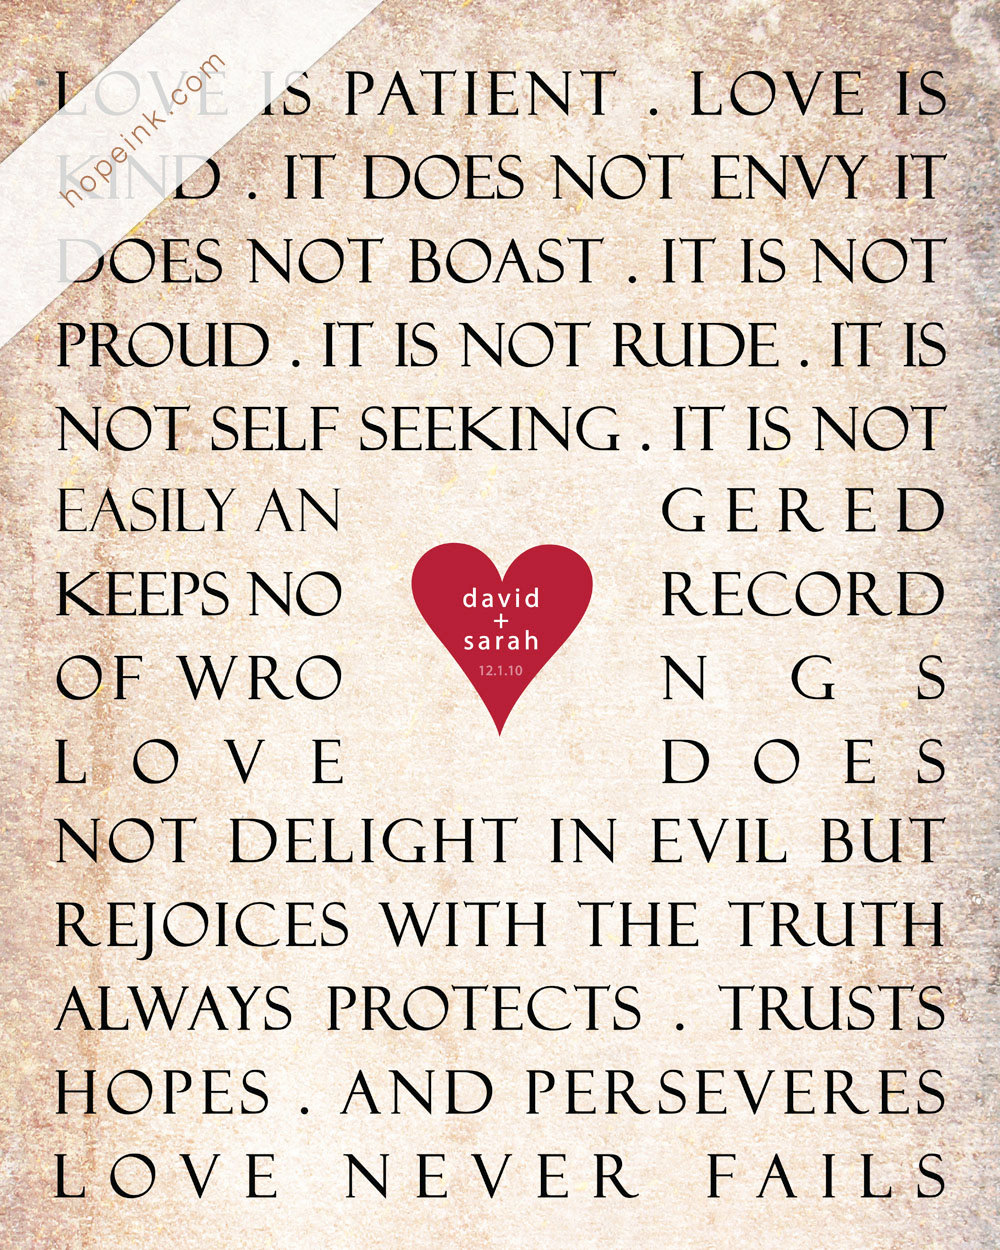 Inspirational Quotes On Pinterest: Marriage Quotes From The Bible. QuotesGram